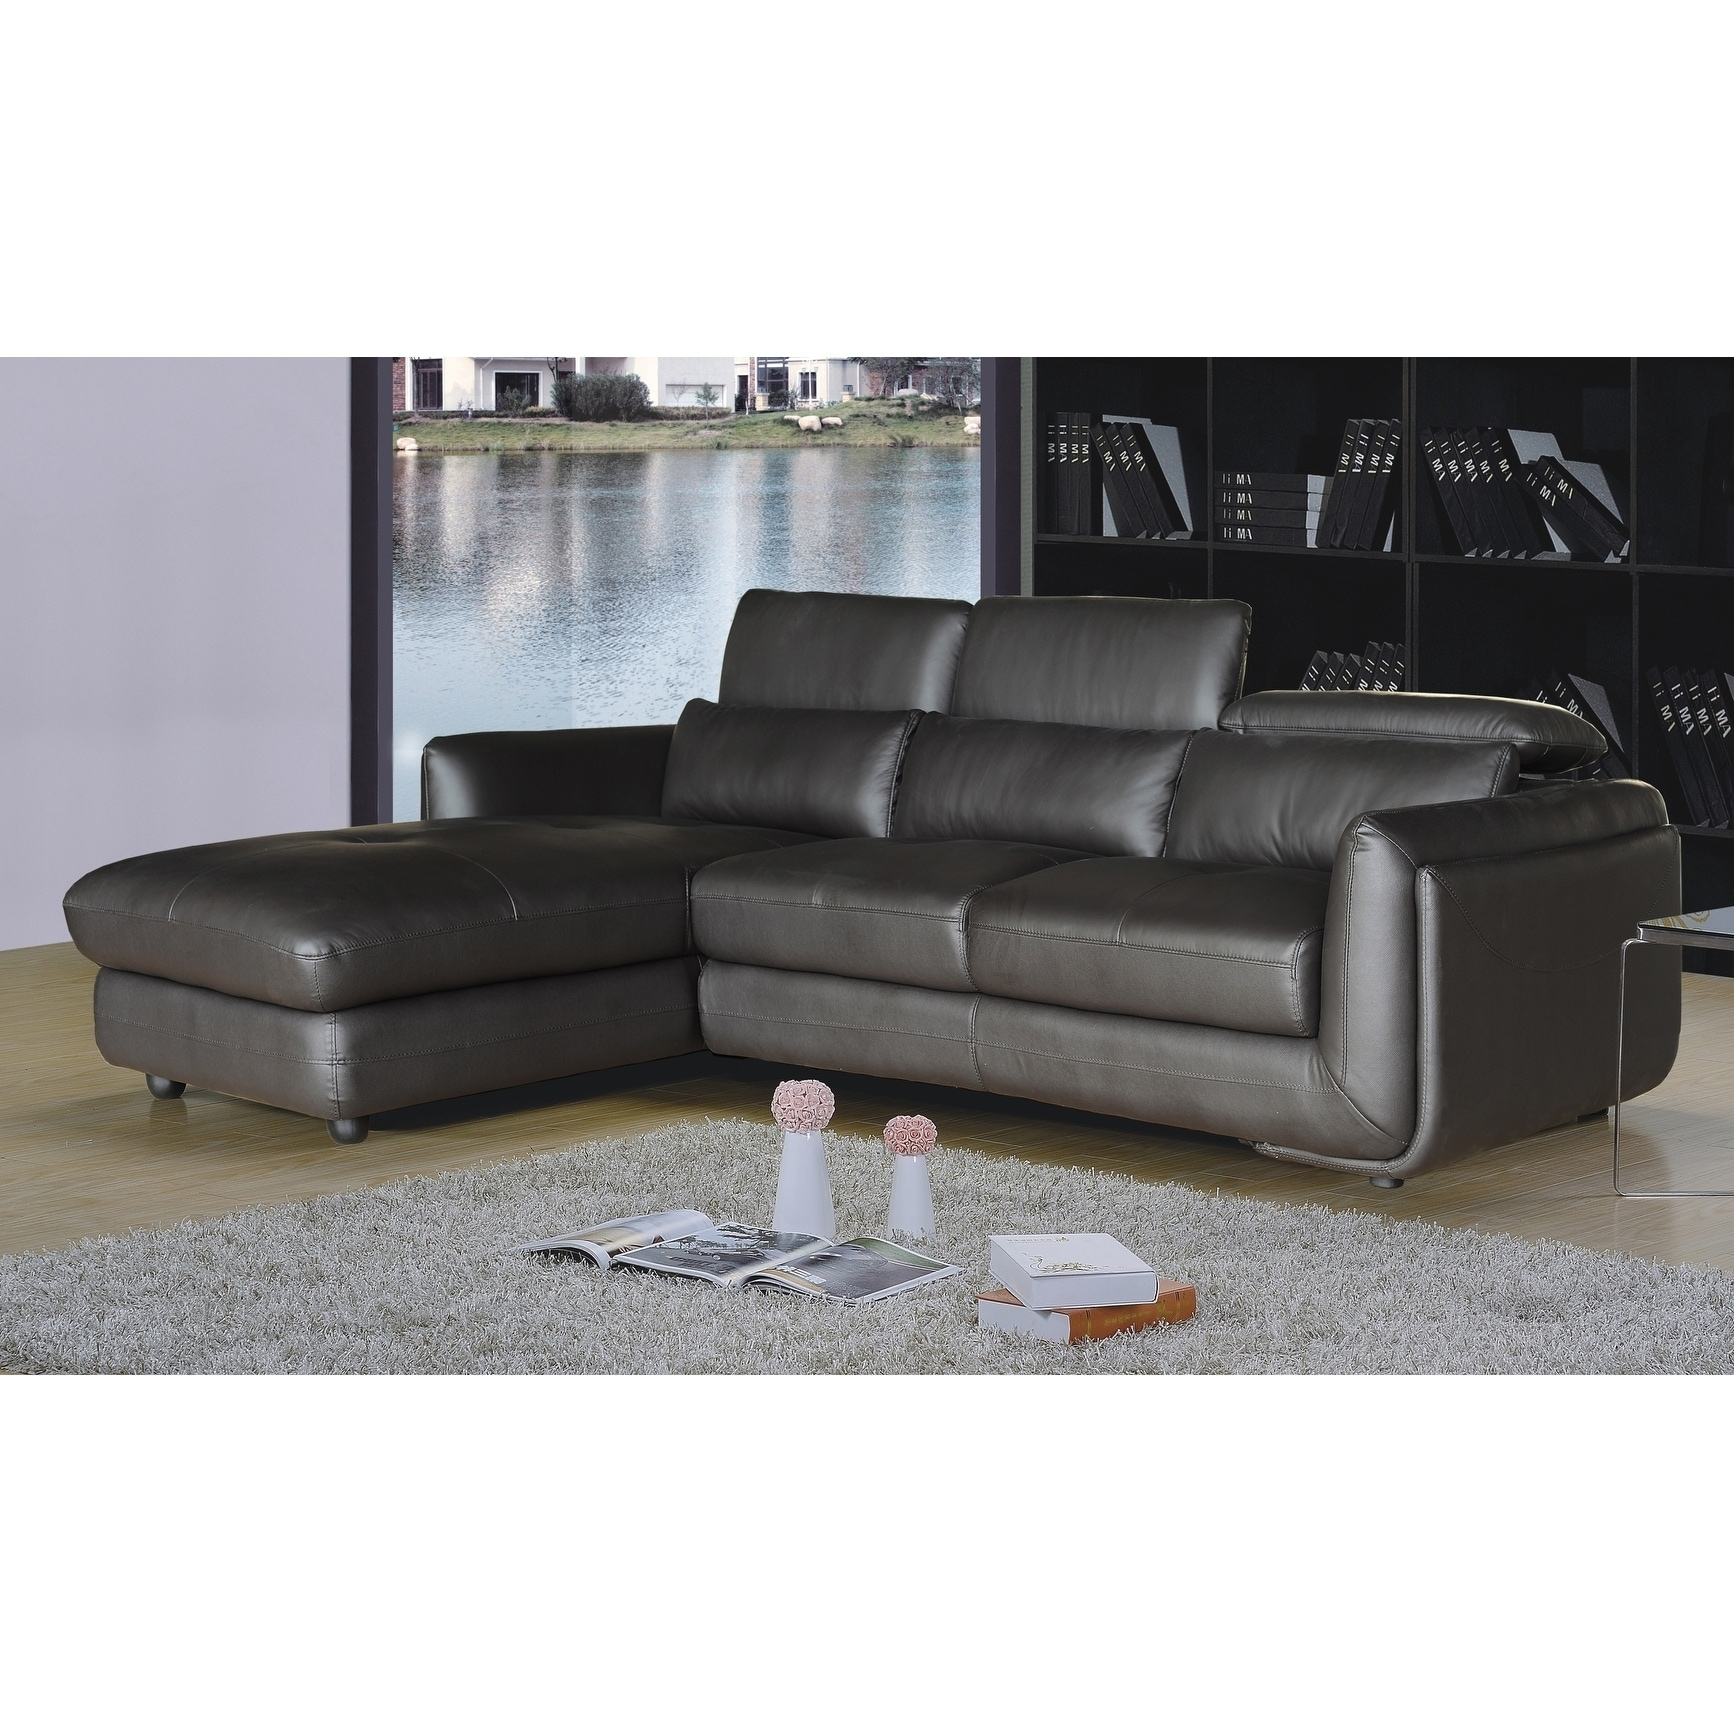 Genial Shop Ron Modern Brown Leather 2 Piece Sofa And Chaise Sectional   On Sale    Free Shipping Today   Overstock.com   12637168